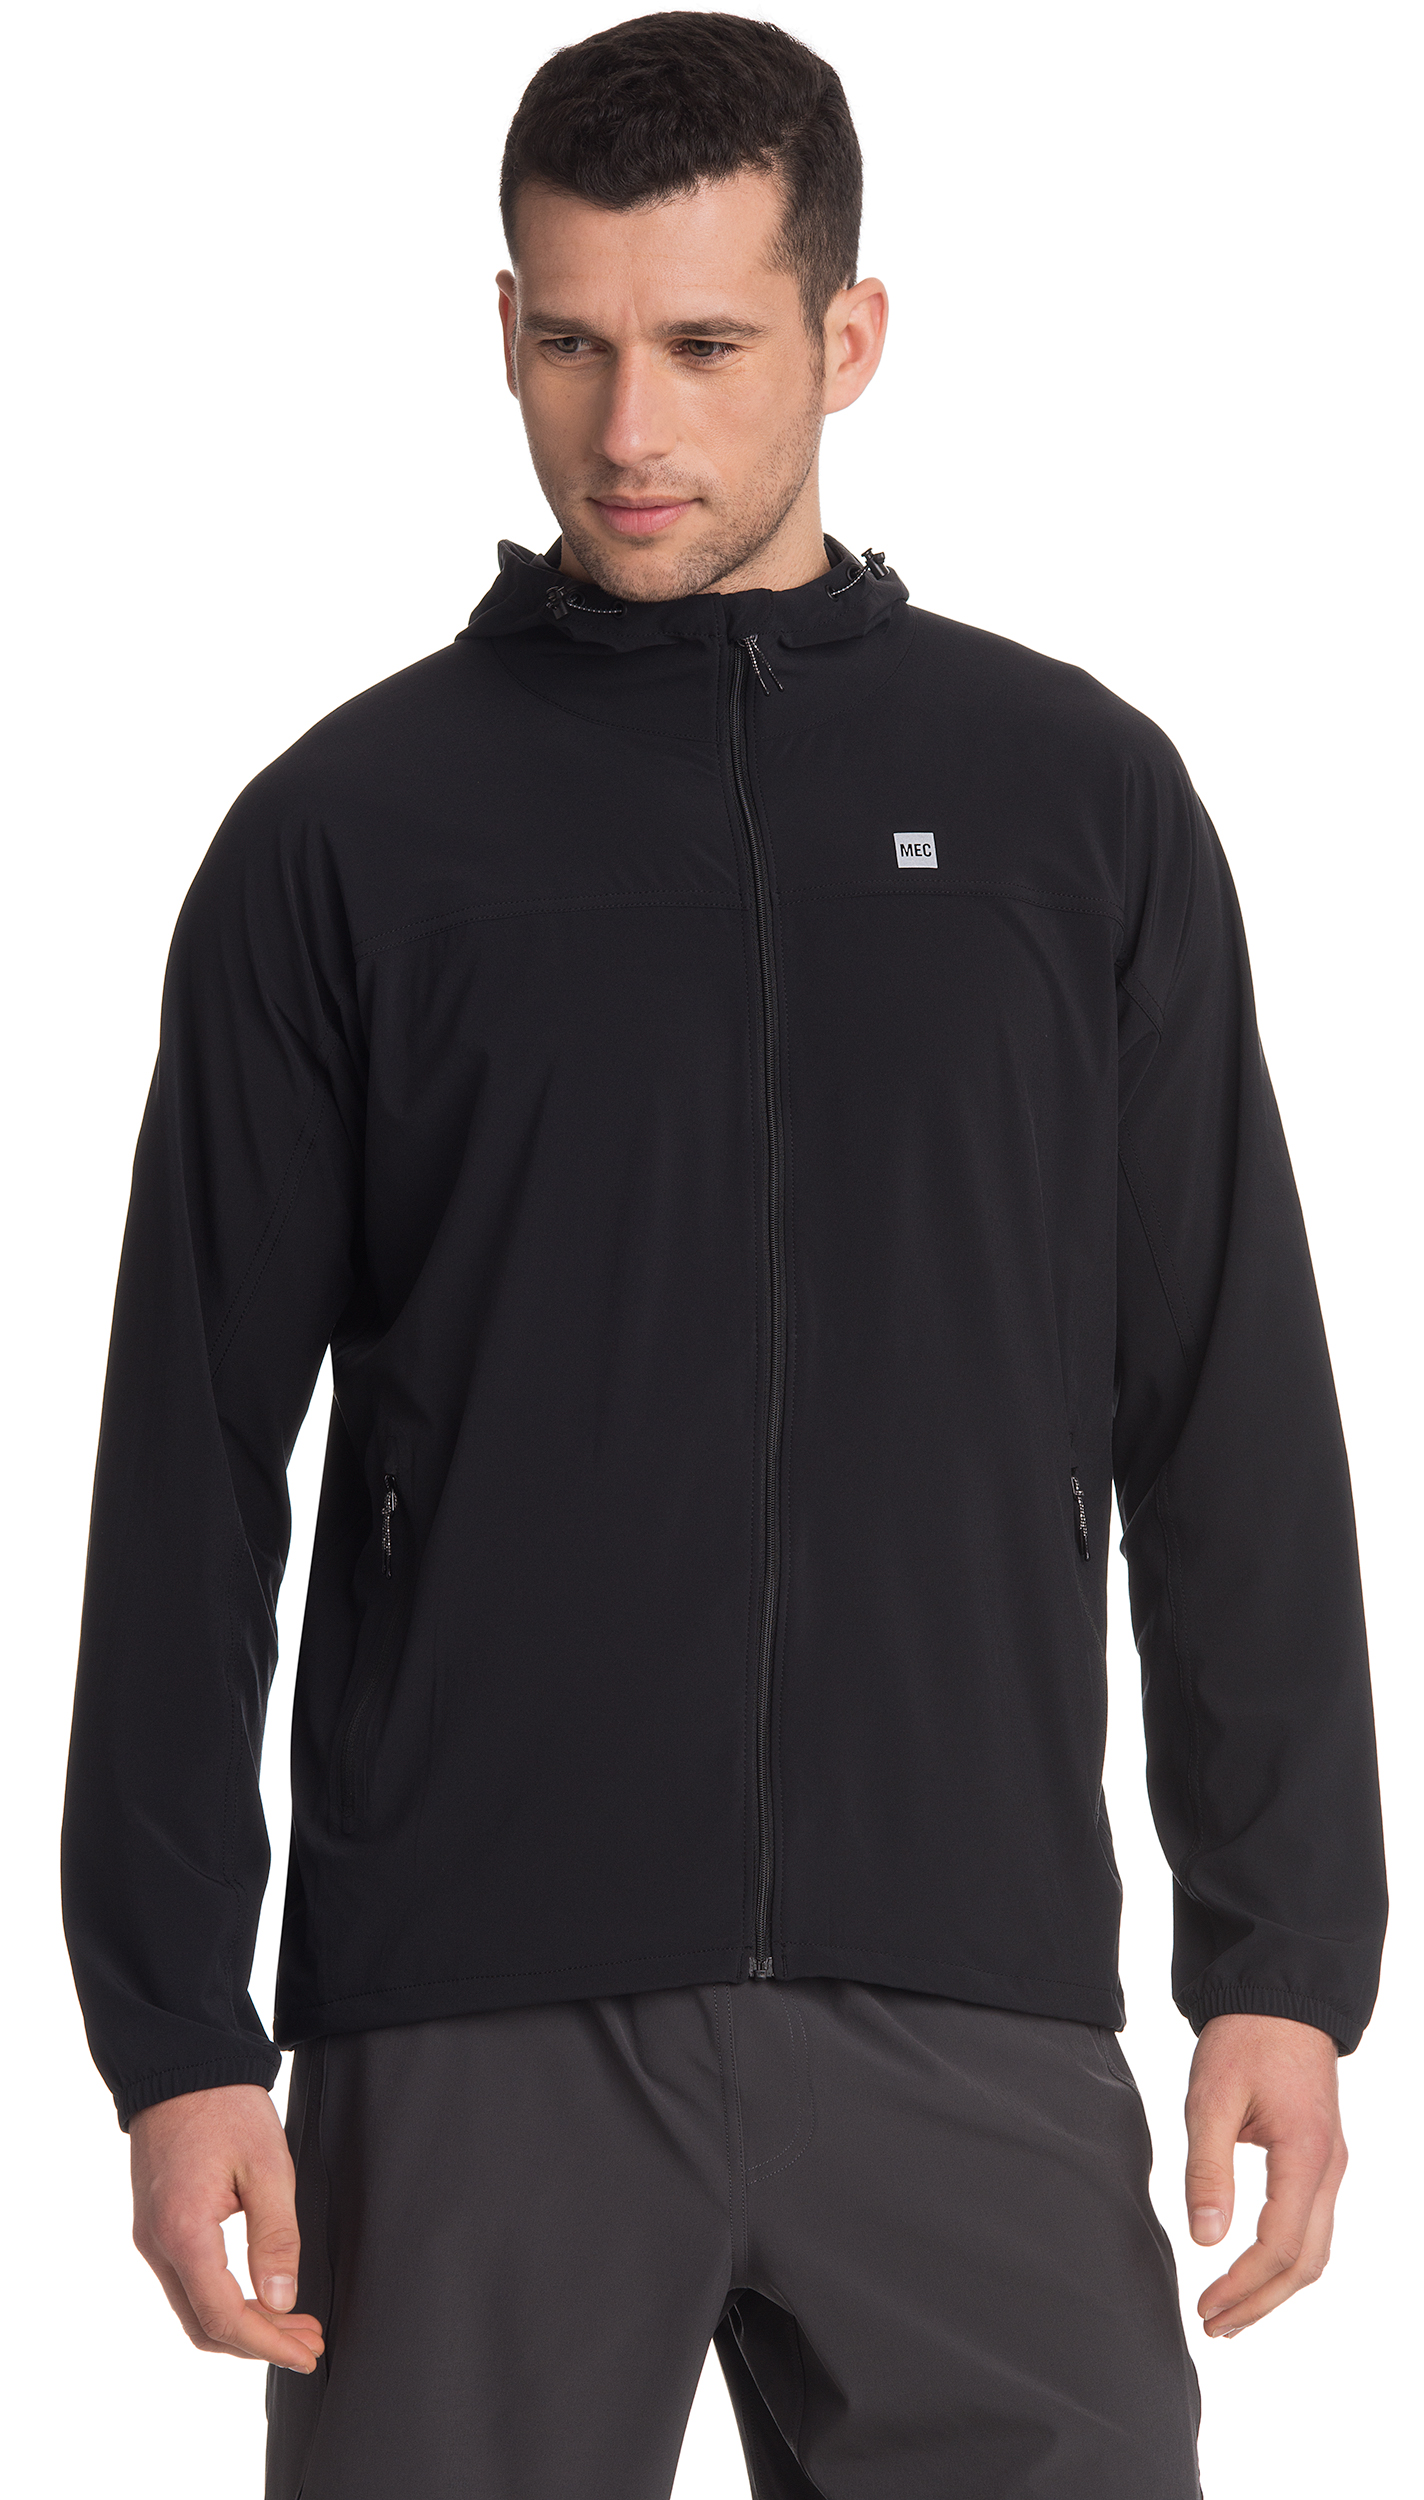 532ddbde778 Running and fitness jackets